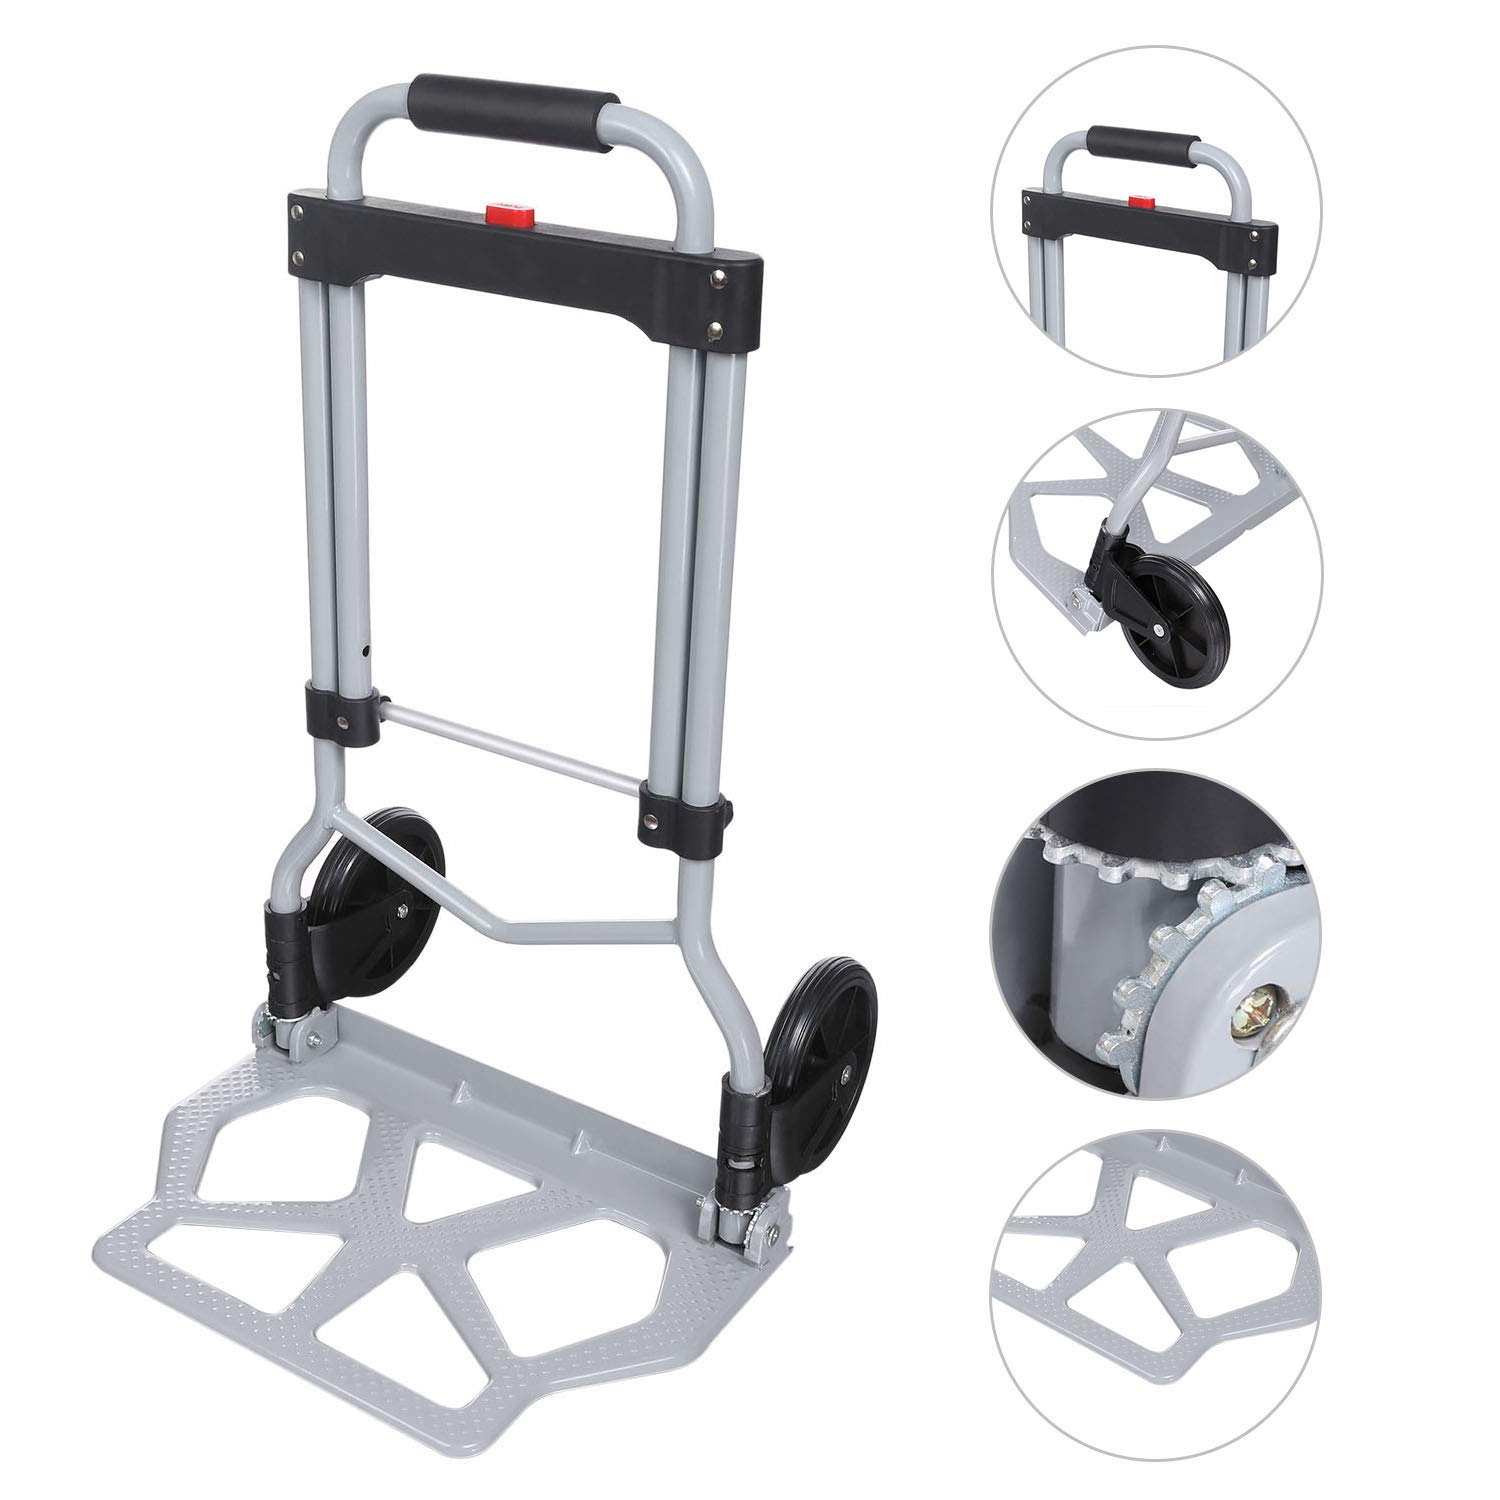 Voluker 220lbs Portable Heavy Duty Aluminum Folding Hand Truck and Dolly Two-Wheel Luggage Cart (US Stock)